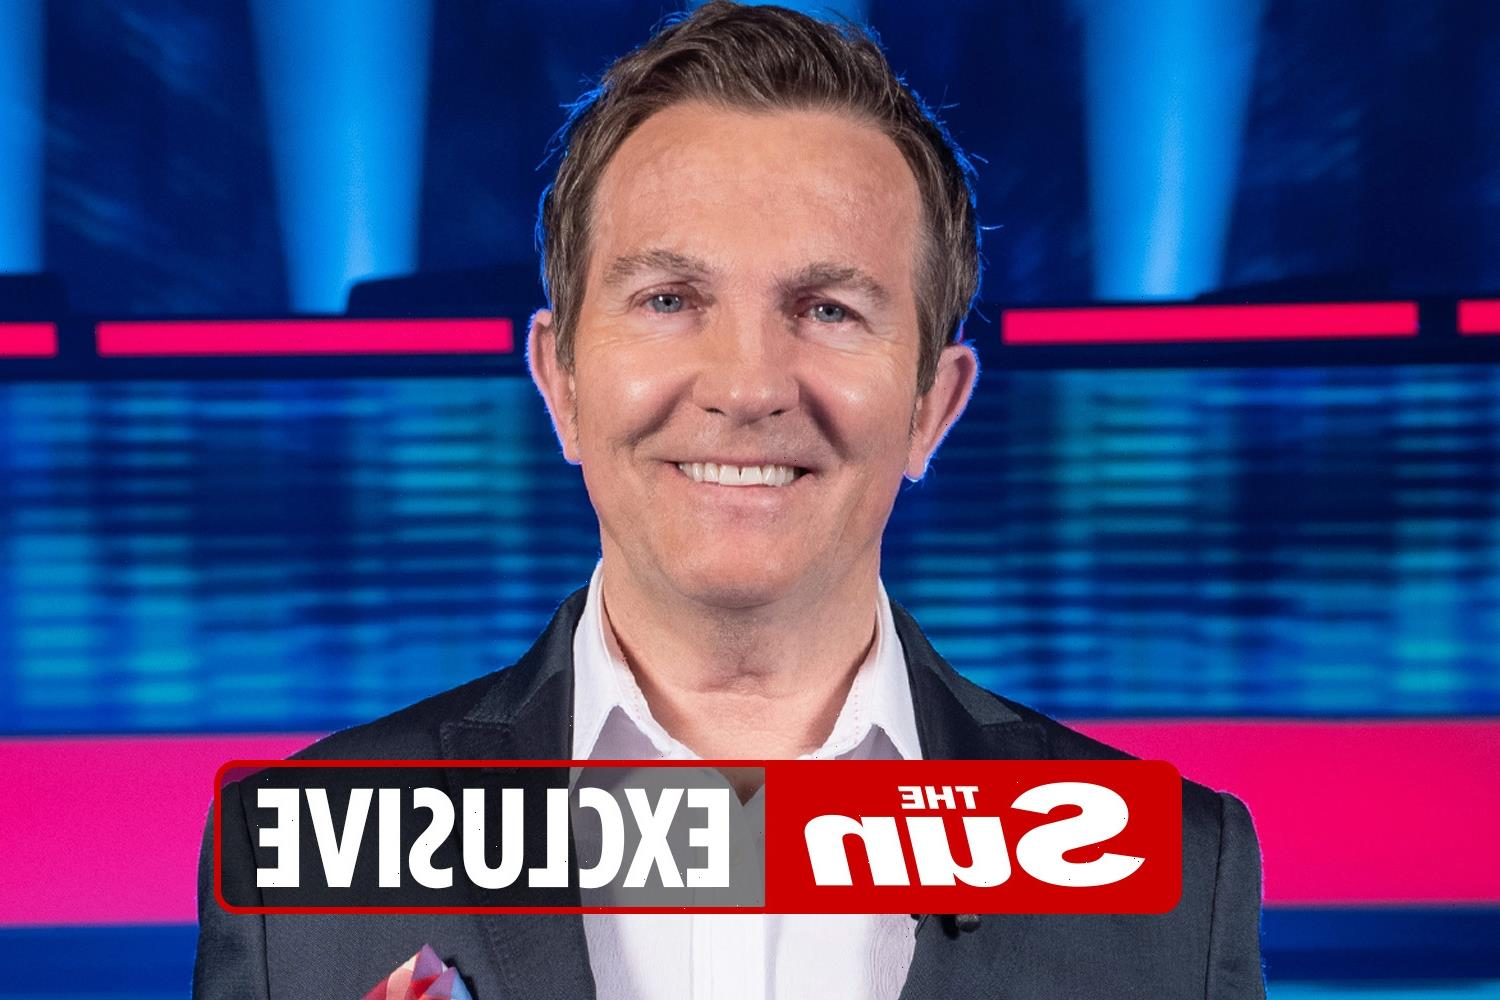 The Chase's Bradley Walsh is now the richest star on daytime TV with £12.5 MILLION in the bank